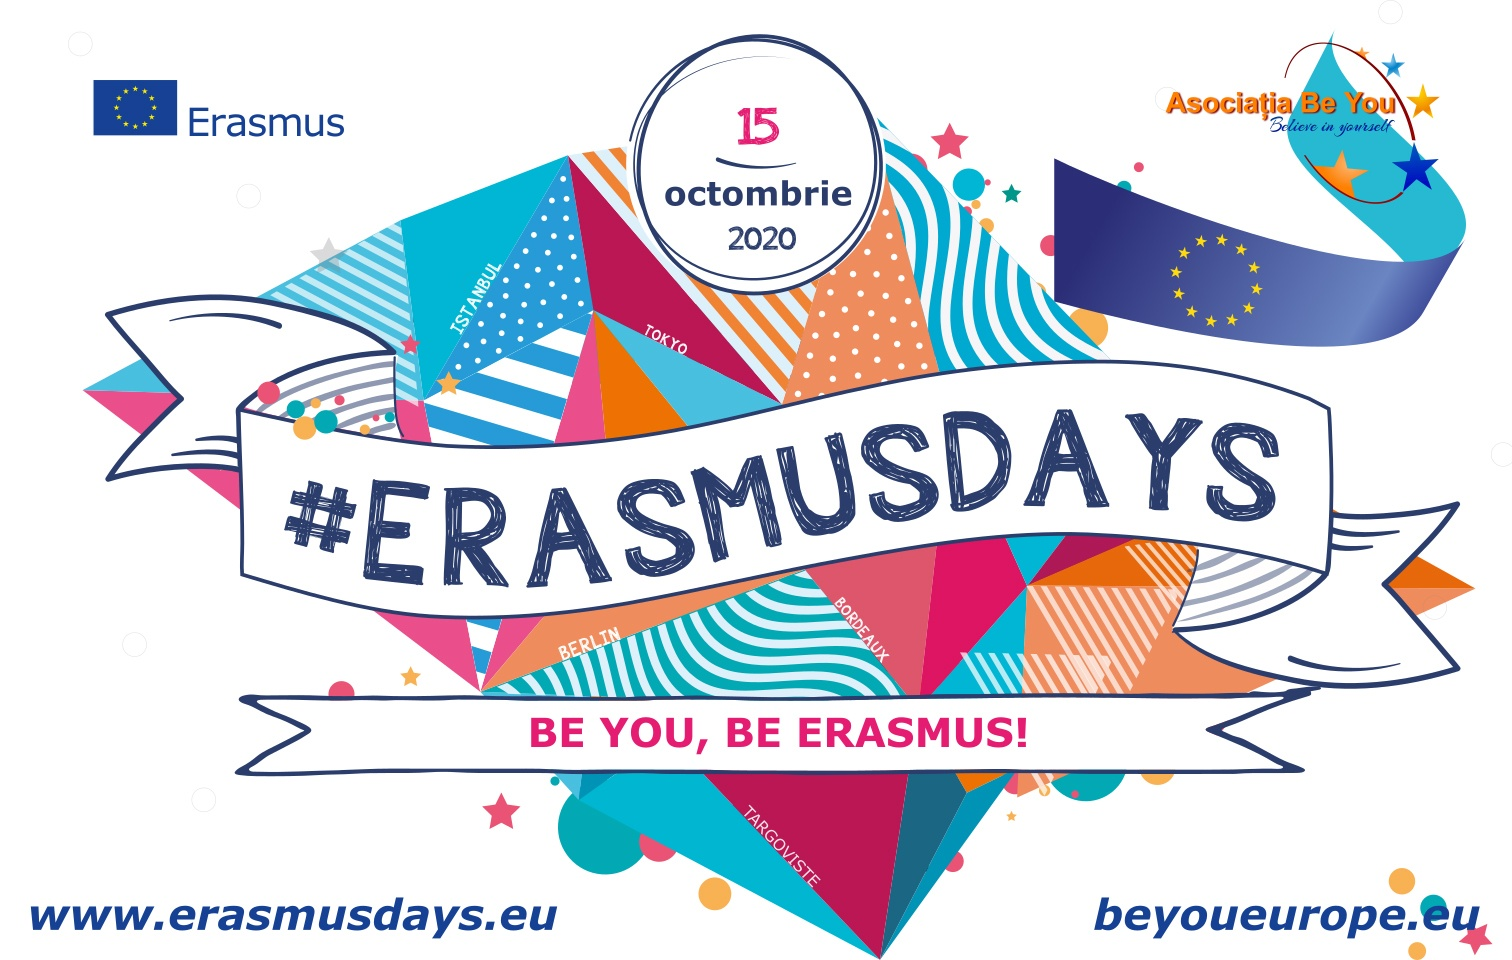 Be You, Be Erasmus